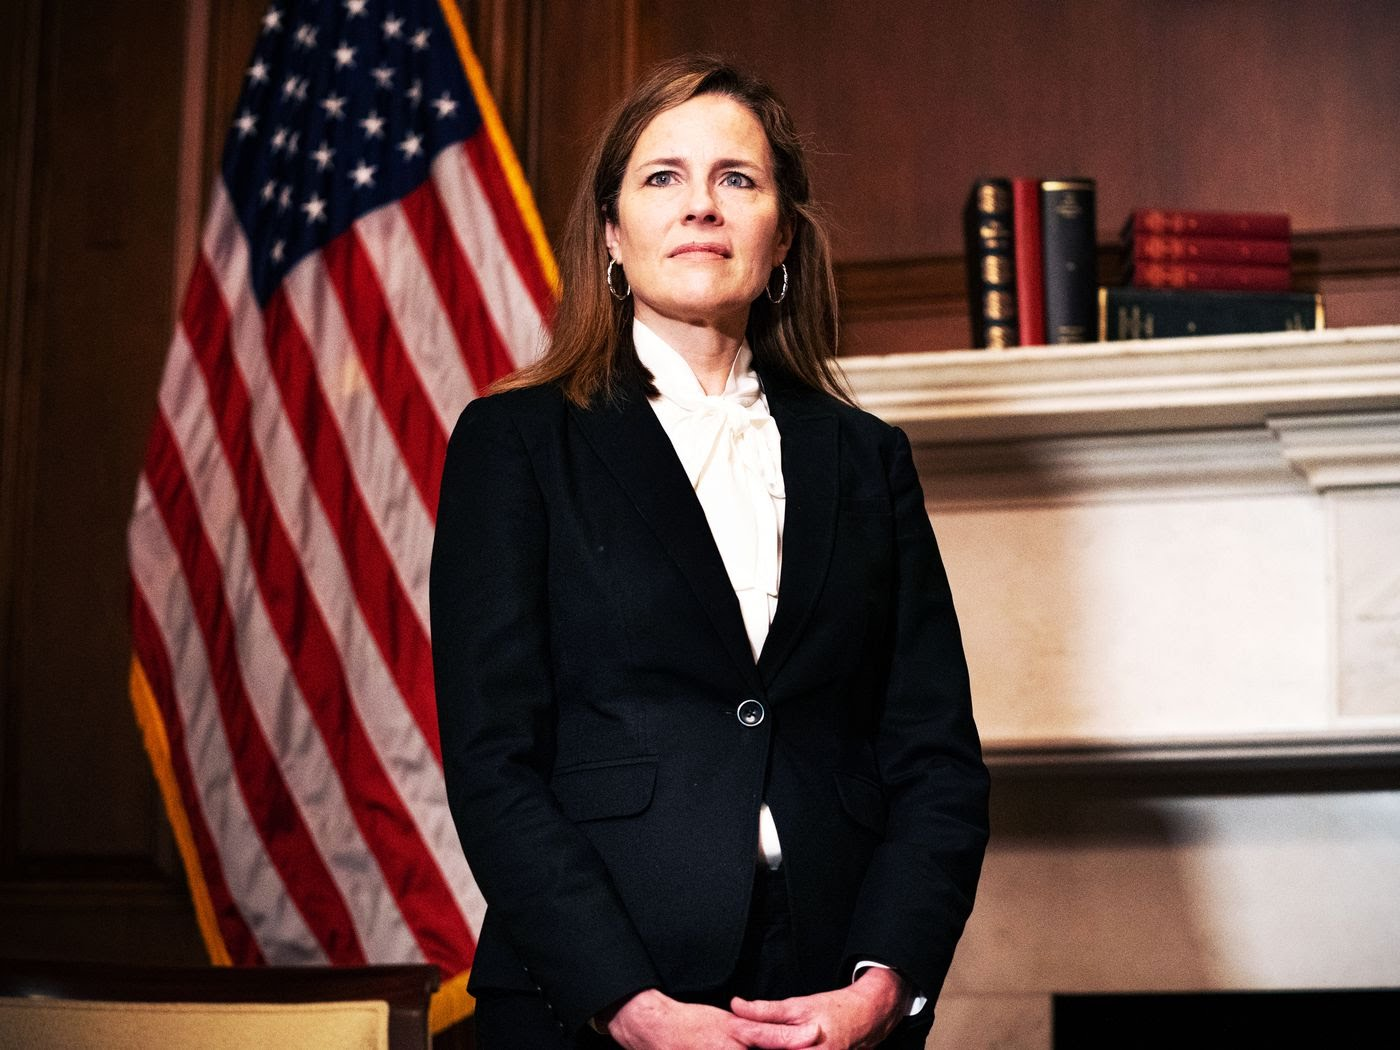 Amy Coney Barrett confirmed to supreme court in major victory for US conservatives